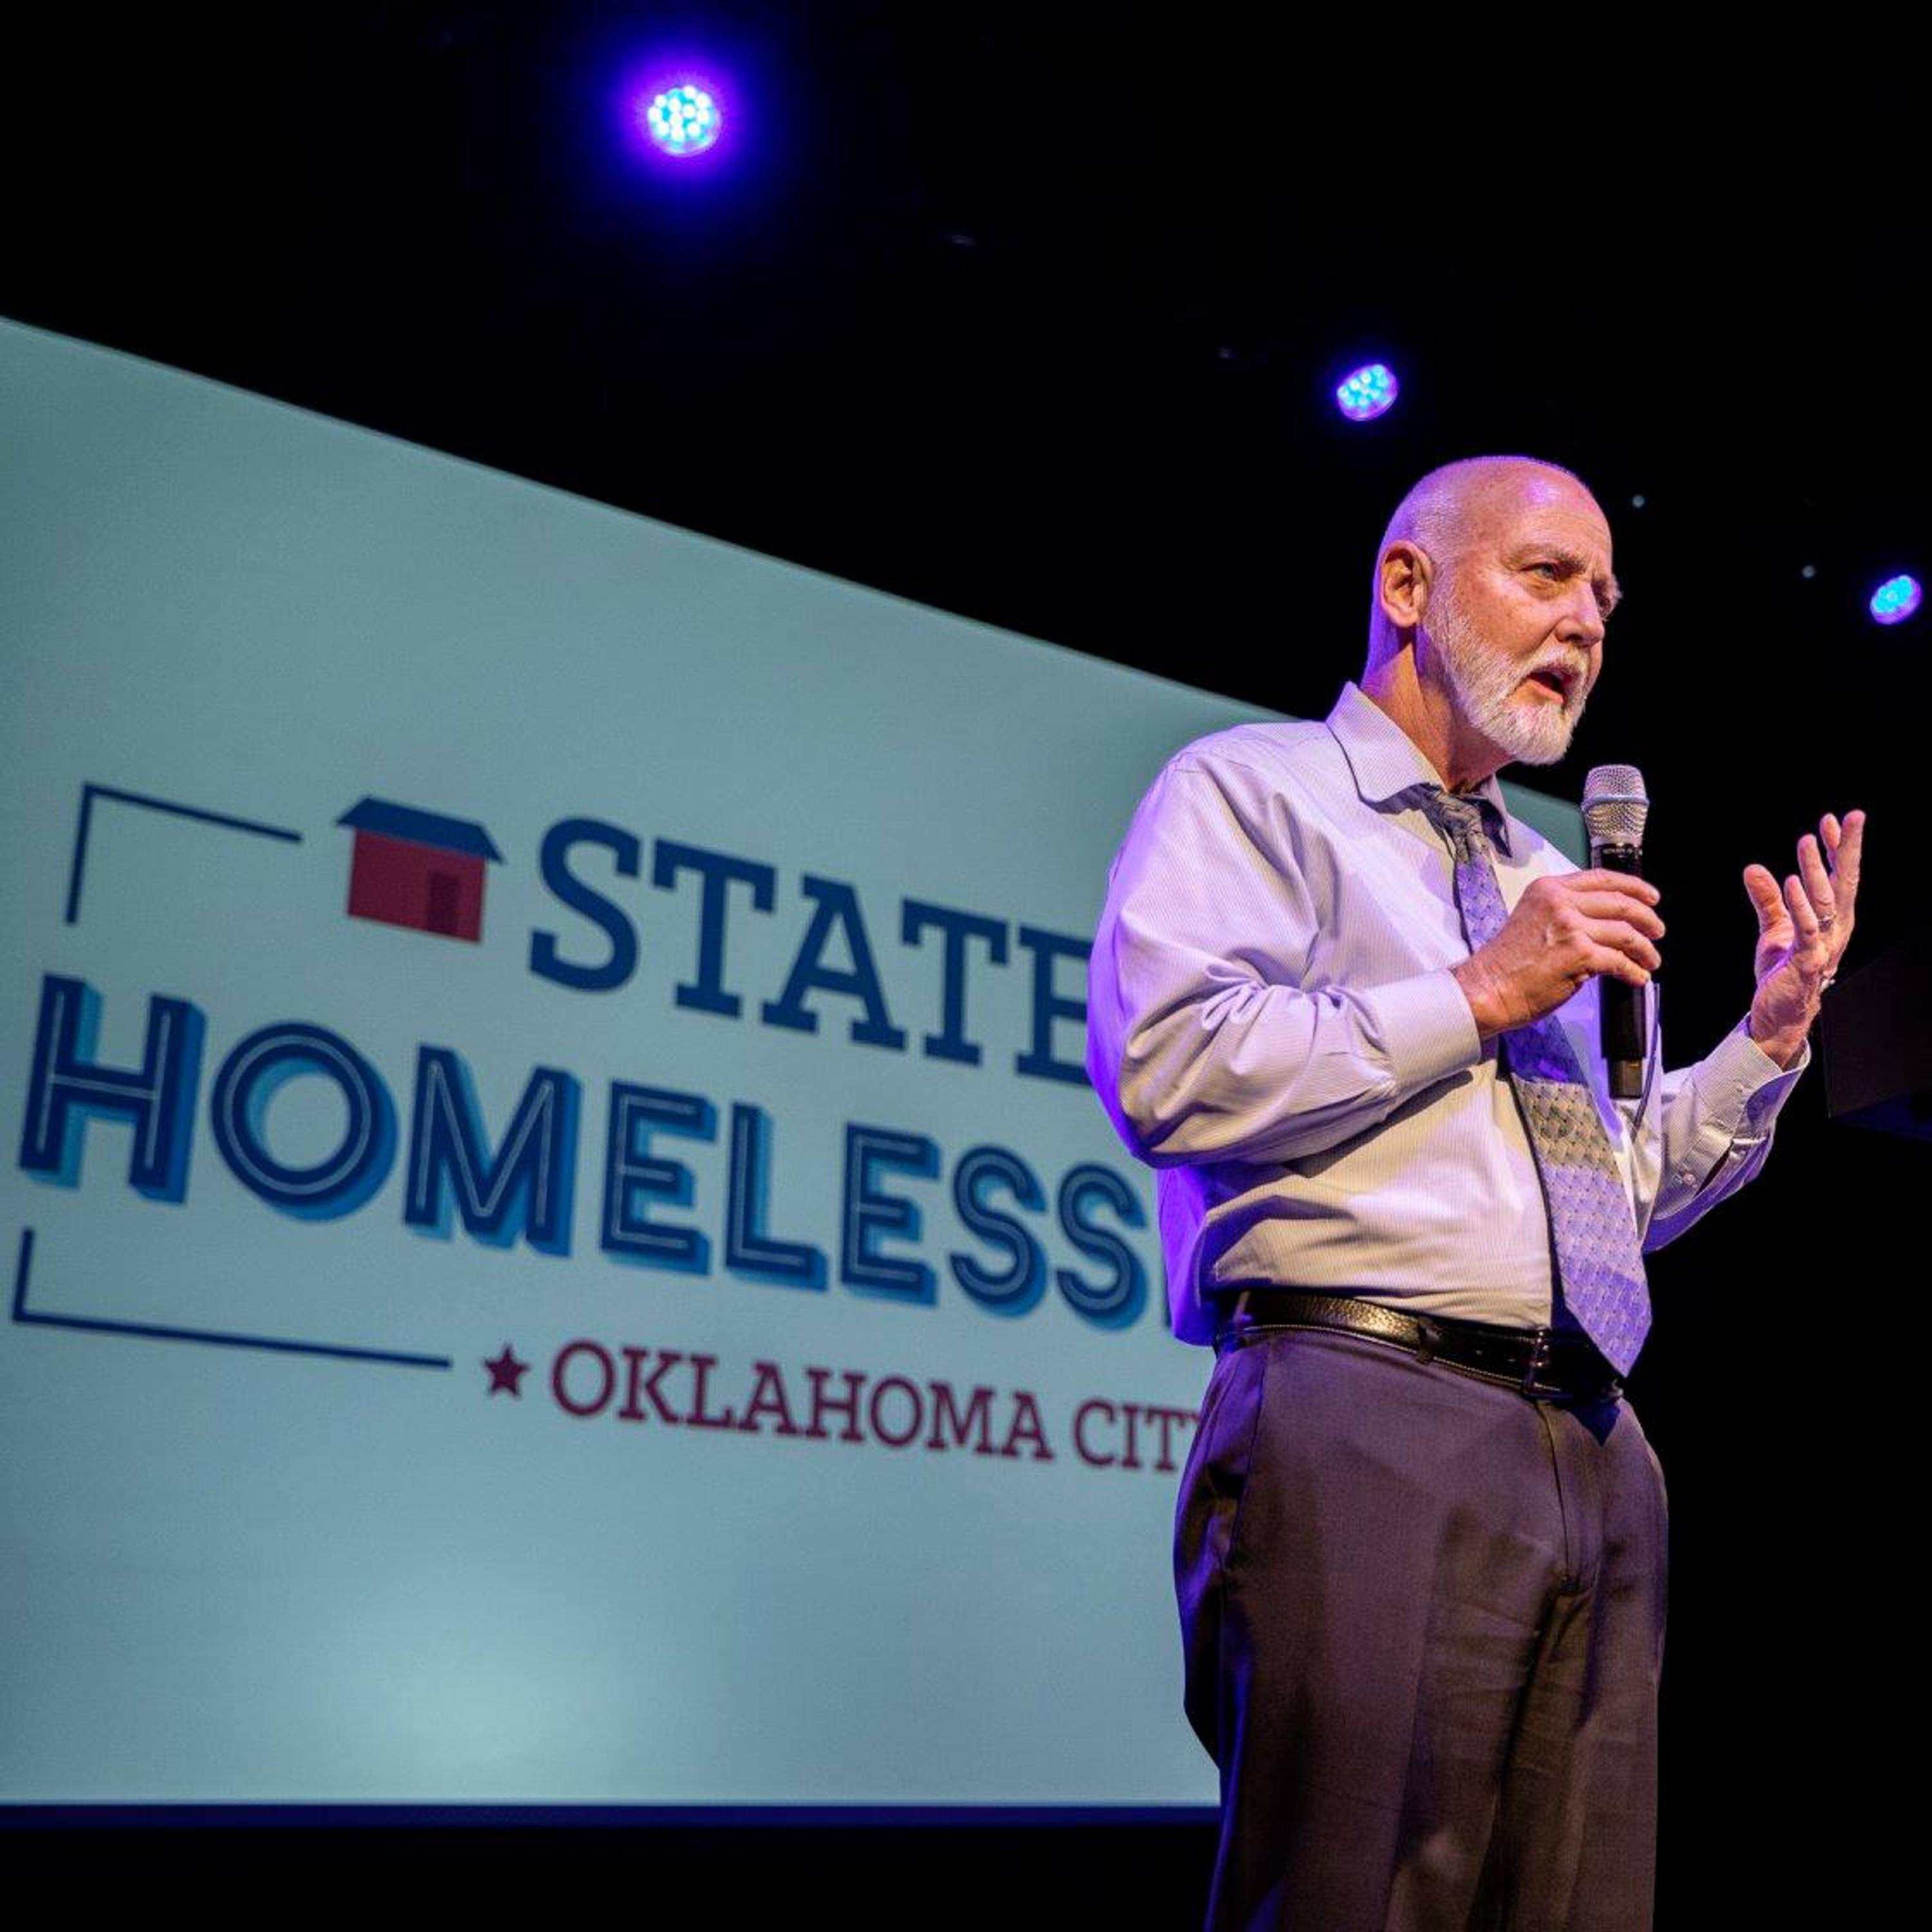 Mental Health Download: Exploring Mental Illness, Suicide, Homelessness and Incarceration - PART 1: Exploring the Annual Oklahoma City Homeless Count with Dan Straughan